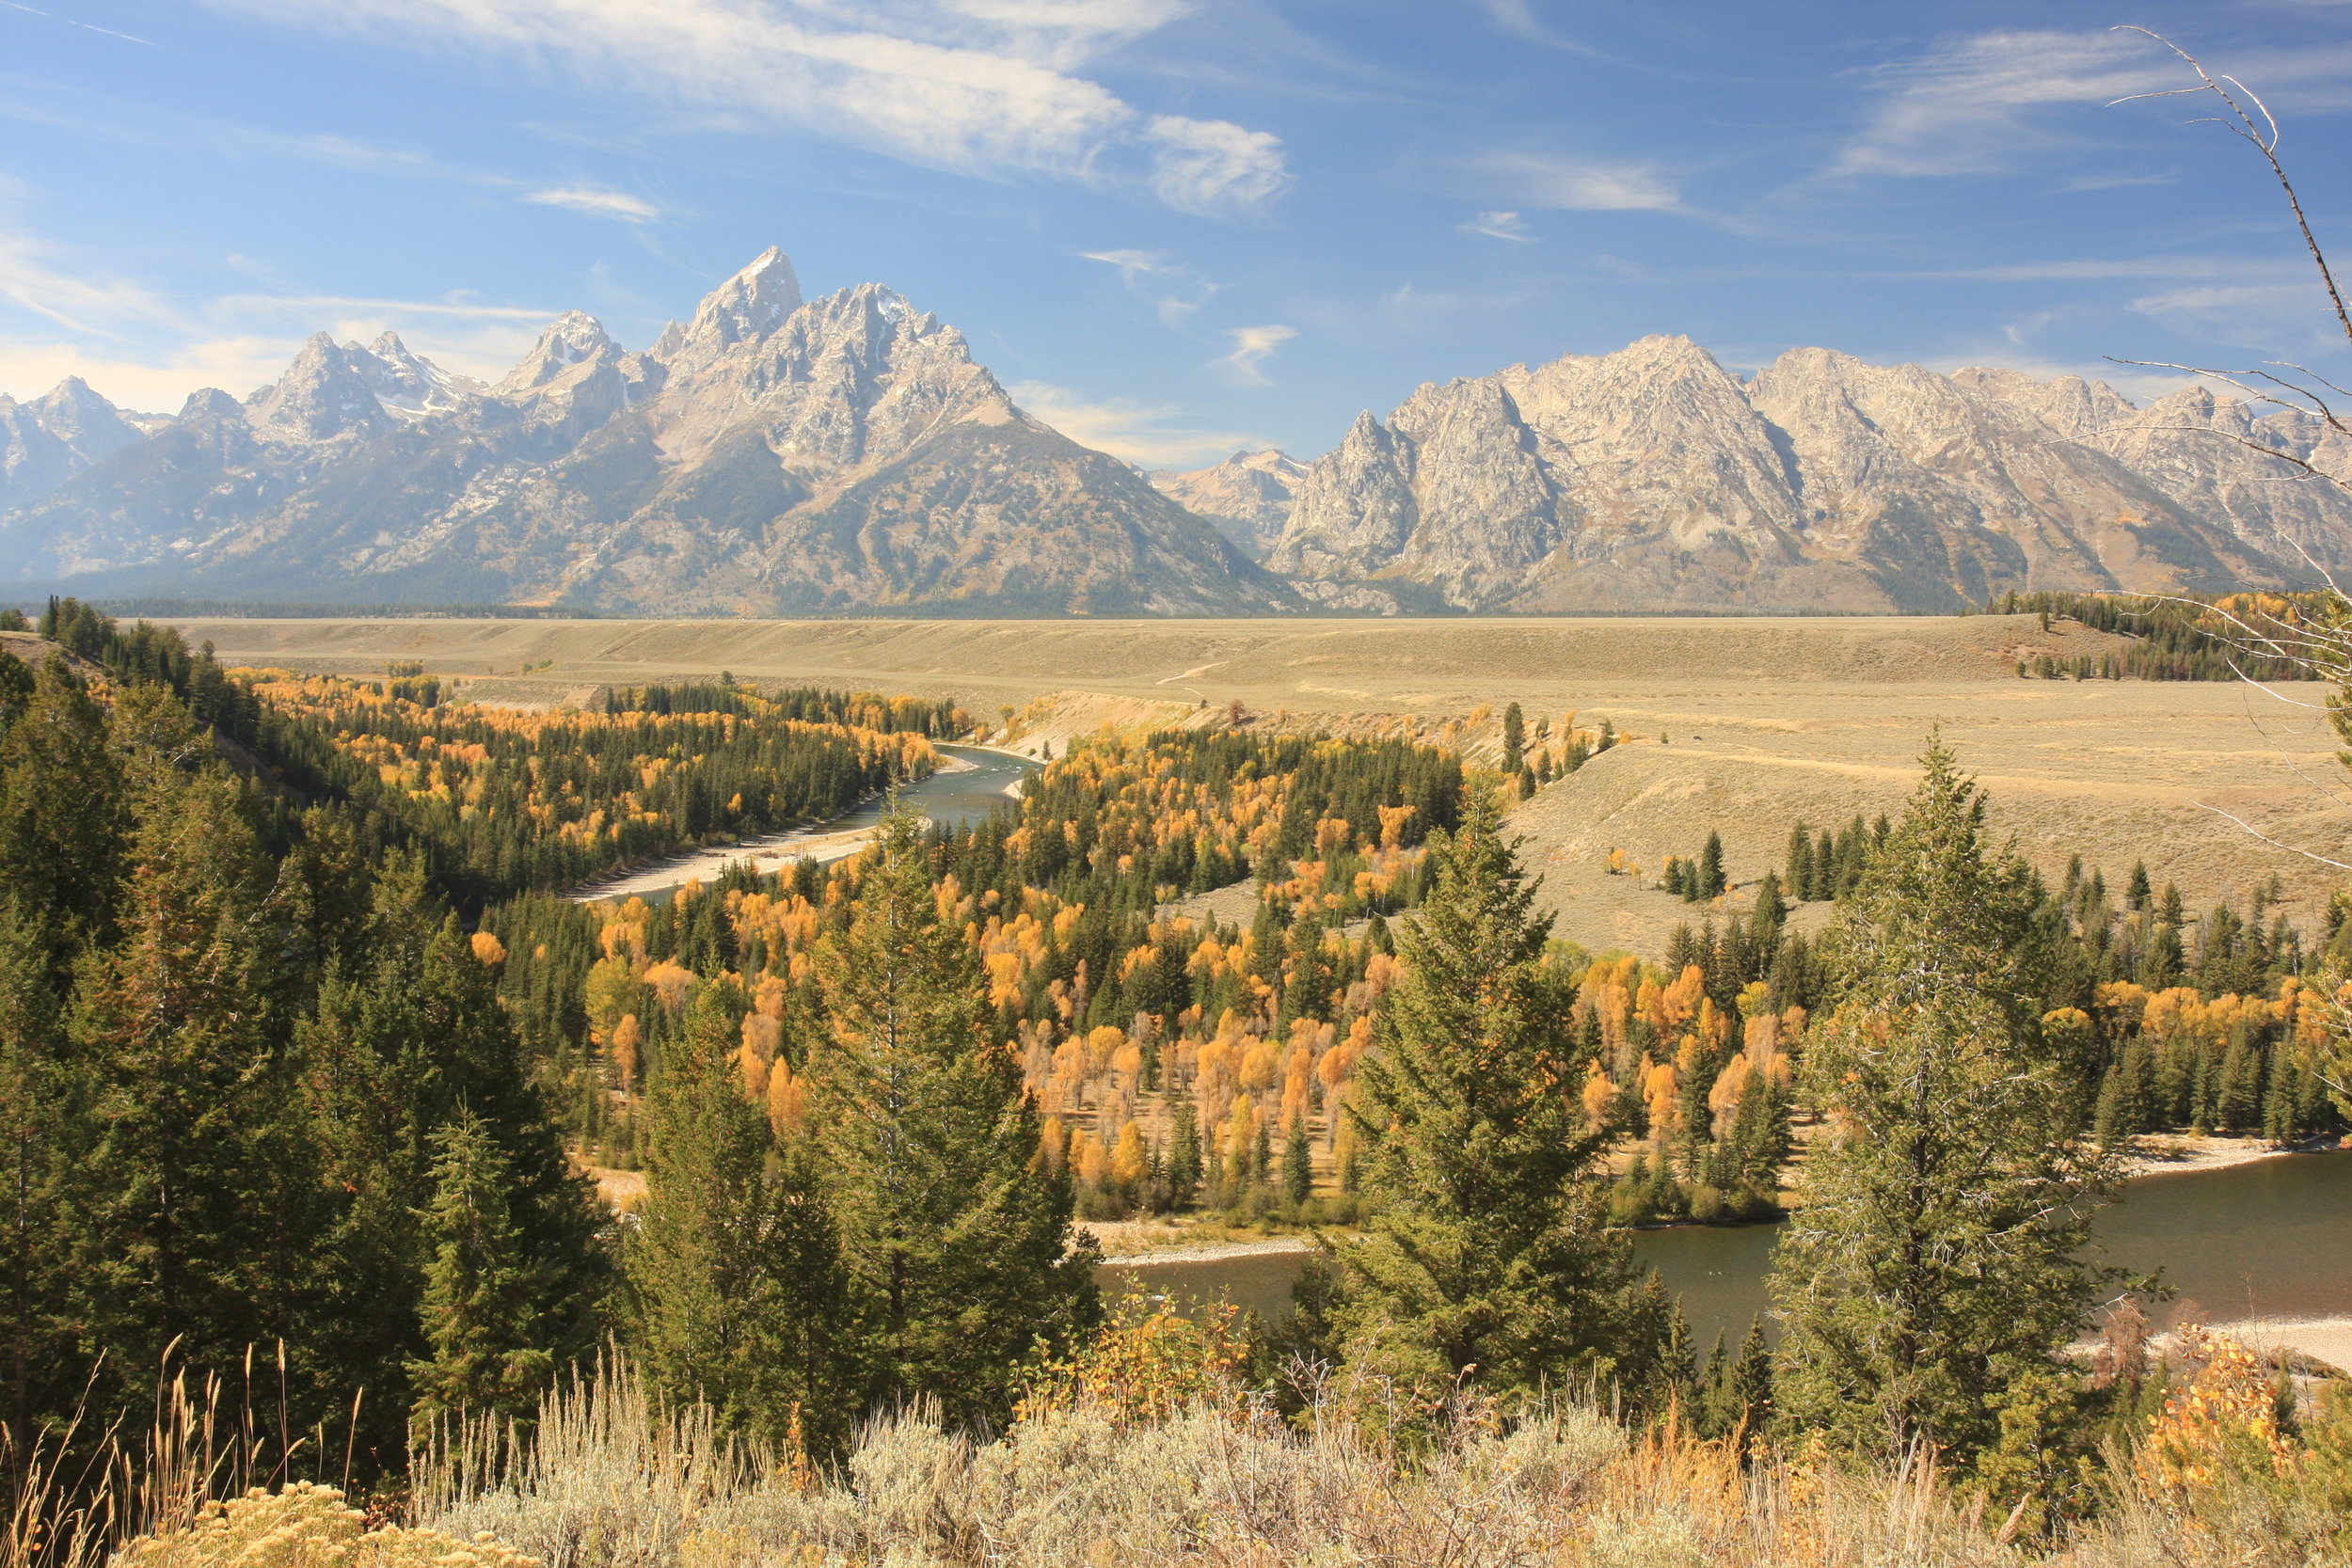 The Snake River as it flows by the Tetons in Wyoming. (Photo Len Trout.)